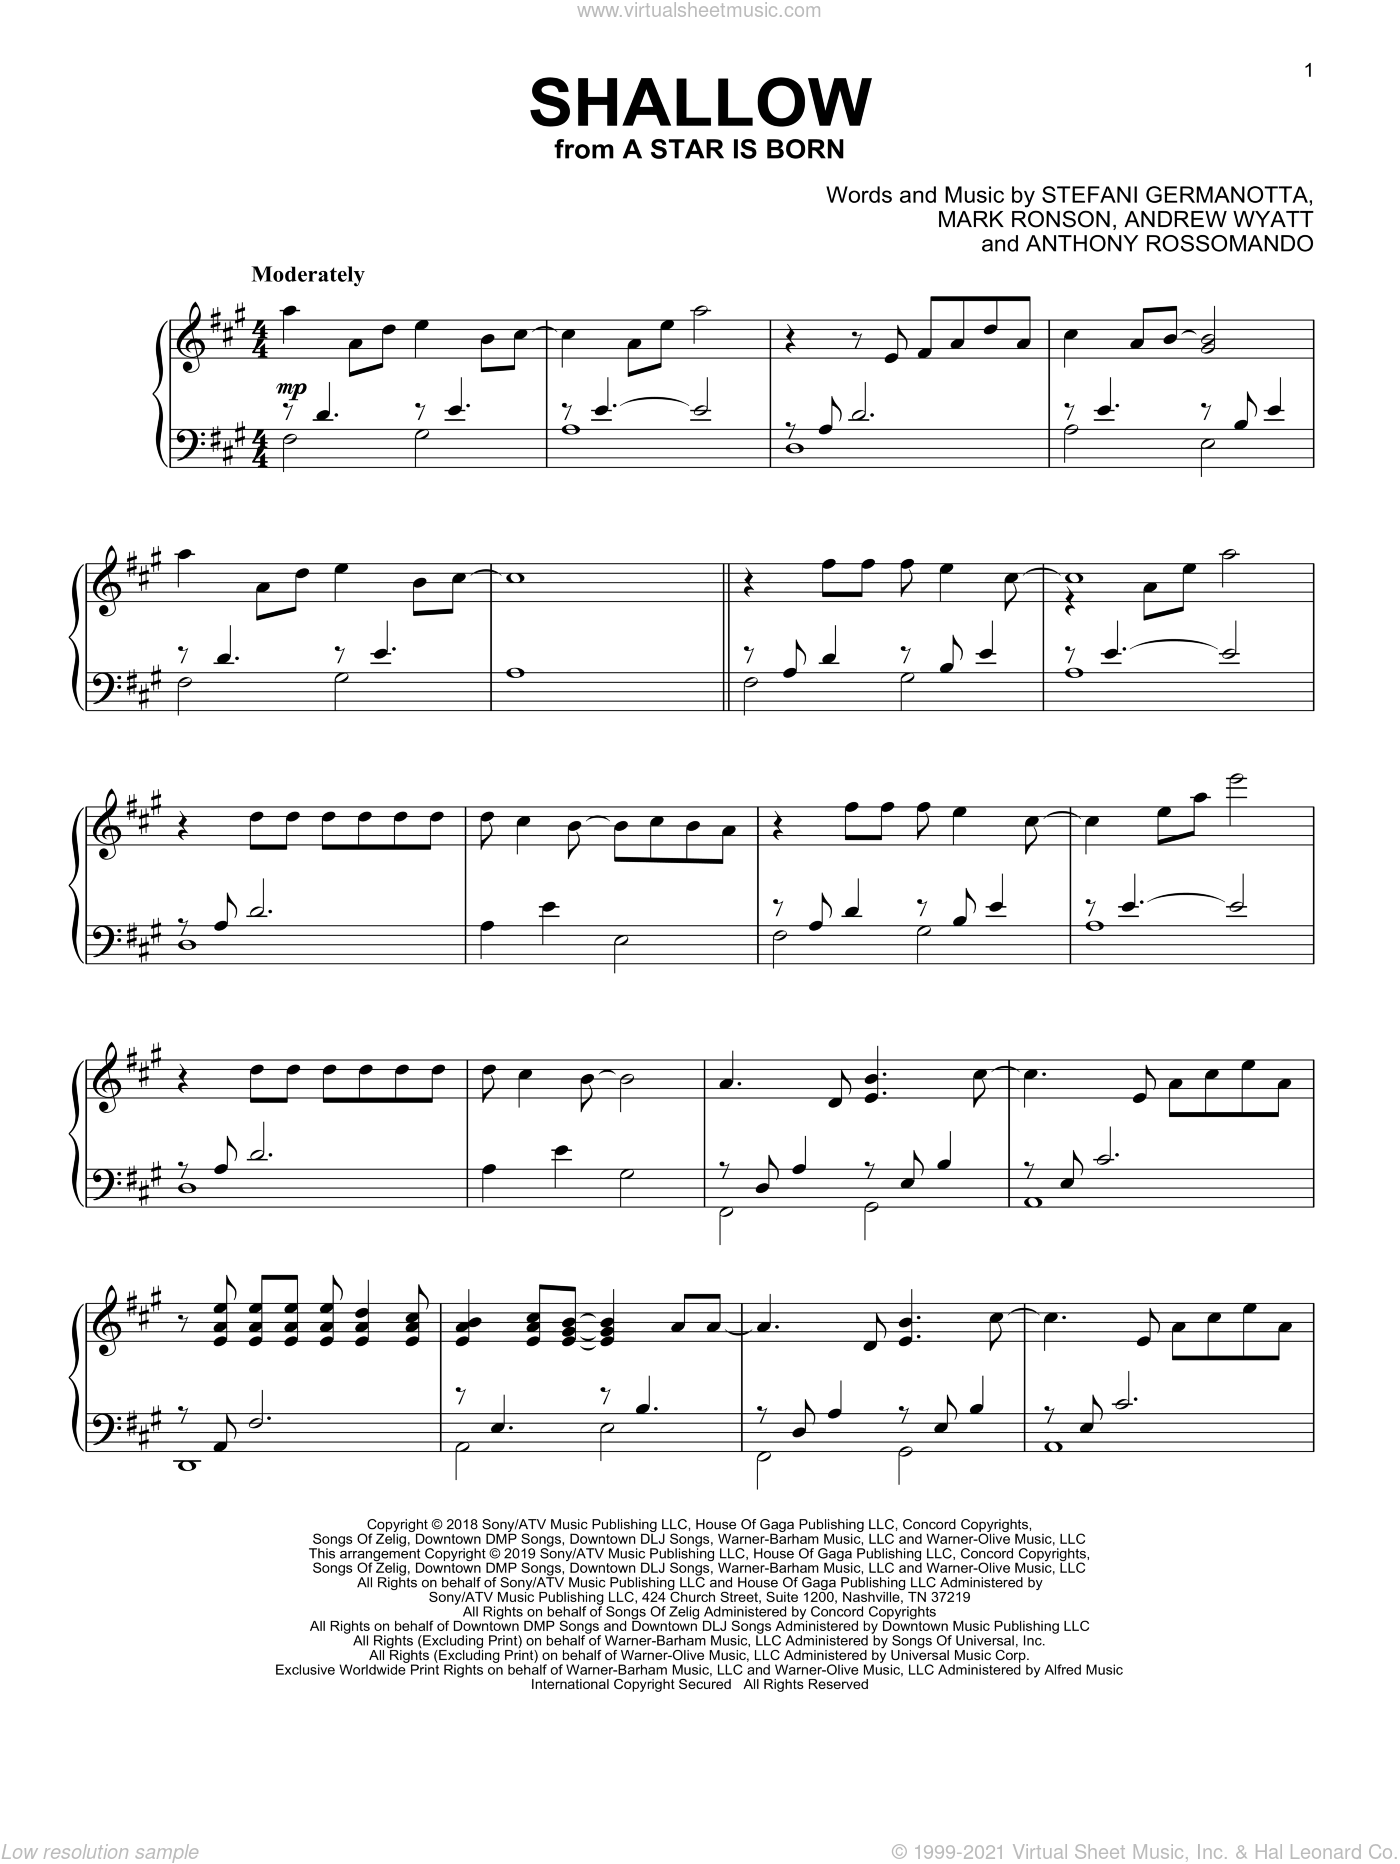 Shallow (from A Star Is Born) sheet music for piano solo by Lady Gaga & Bradley Cooper, Andrew Wyatt, Anthony Rossomando, Lady Gaga and Mark Ronson, intermediate skill level